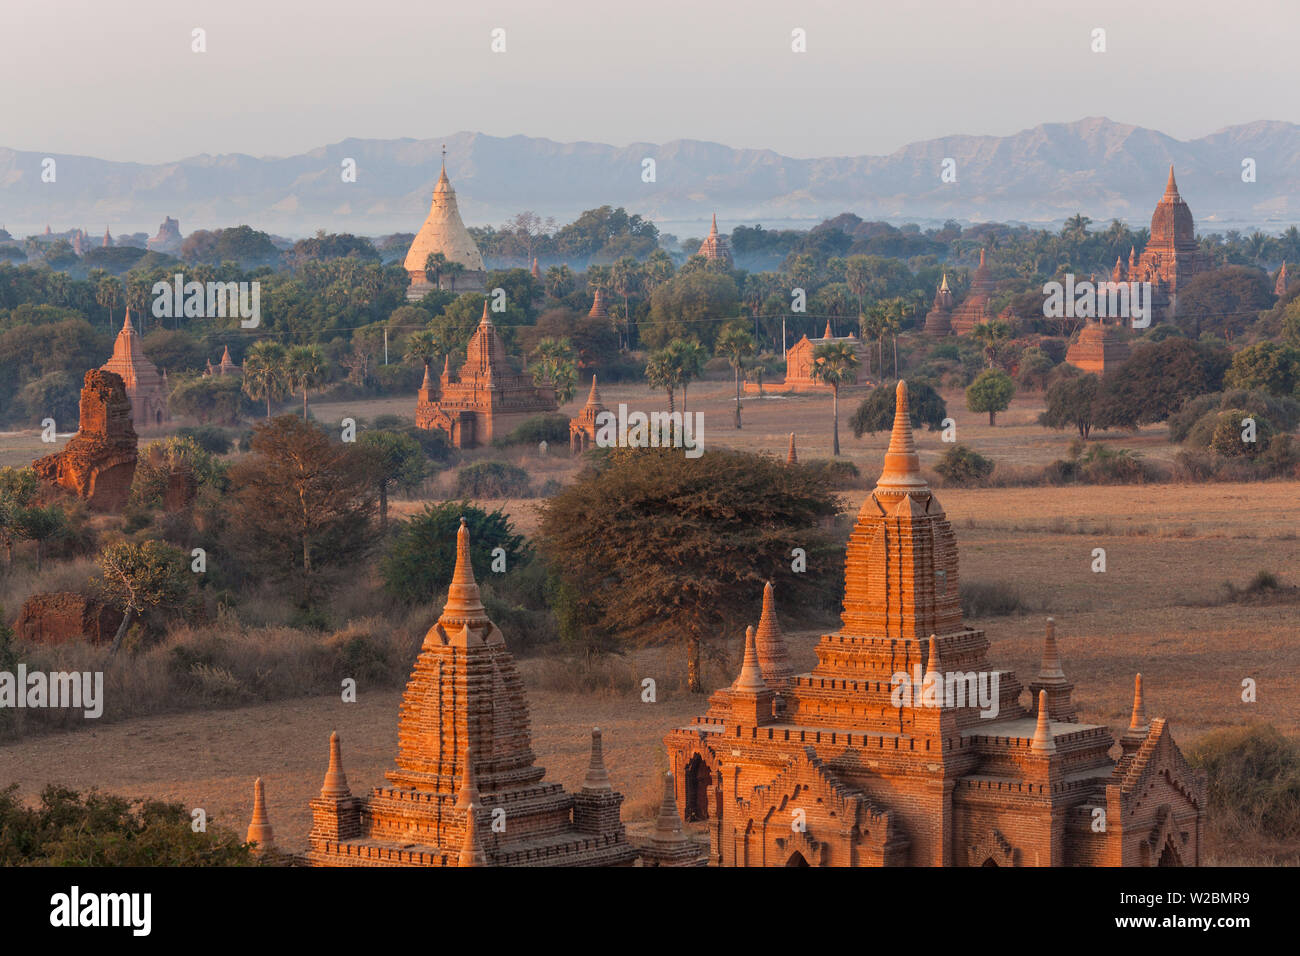 View of the pagodas and temples of the ancient ruined city of Bagan (Pagan), Myanmar, (Burma) Stock Photo